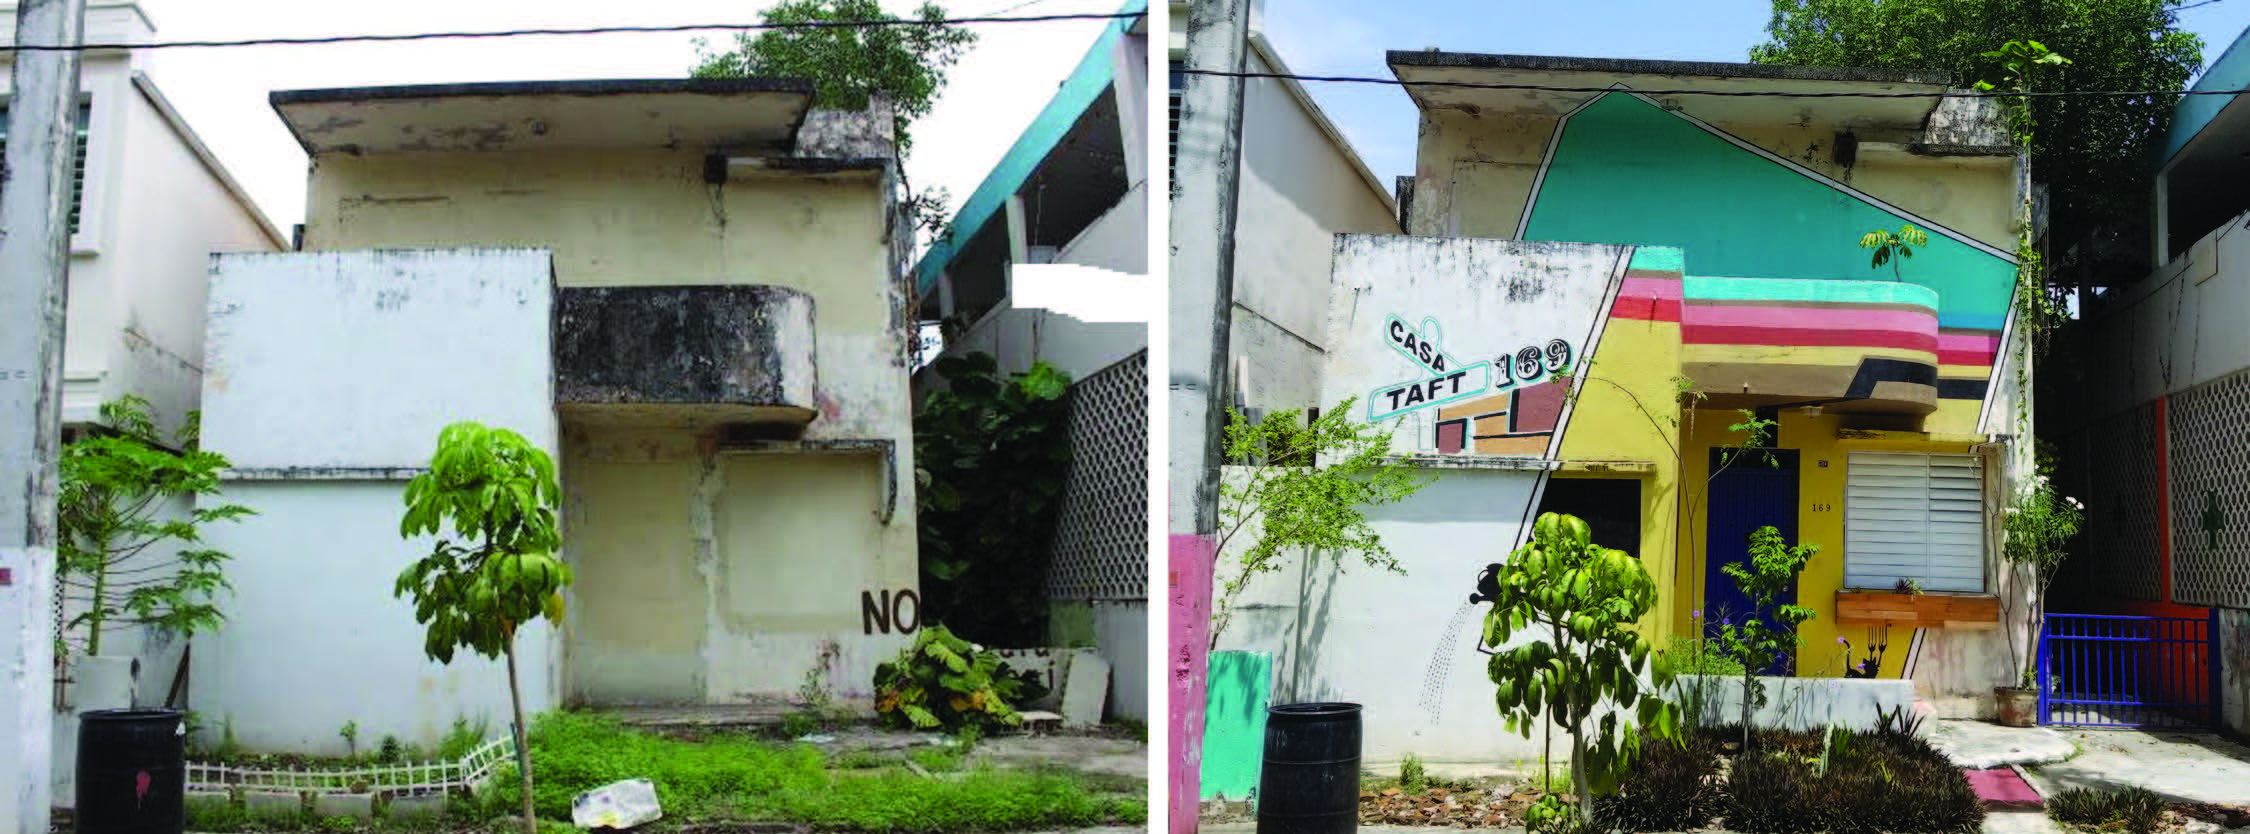 Figure 4: The structure Casa Taft 169 before and after its renovation (completed in 2015-16). This photo shows the façade of Casa Taft 169 before the main door to the property, which had been boarded up, was reopened. After decades of complaints by neighbors, the process of declaring the property a public nuisance was begun in 2004, and the structure was totally sealed. (Photo provided by Casa Taft 169.)